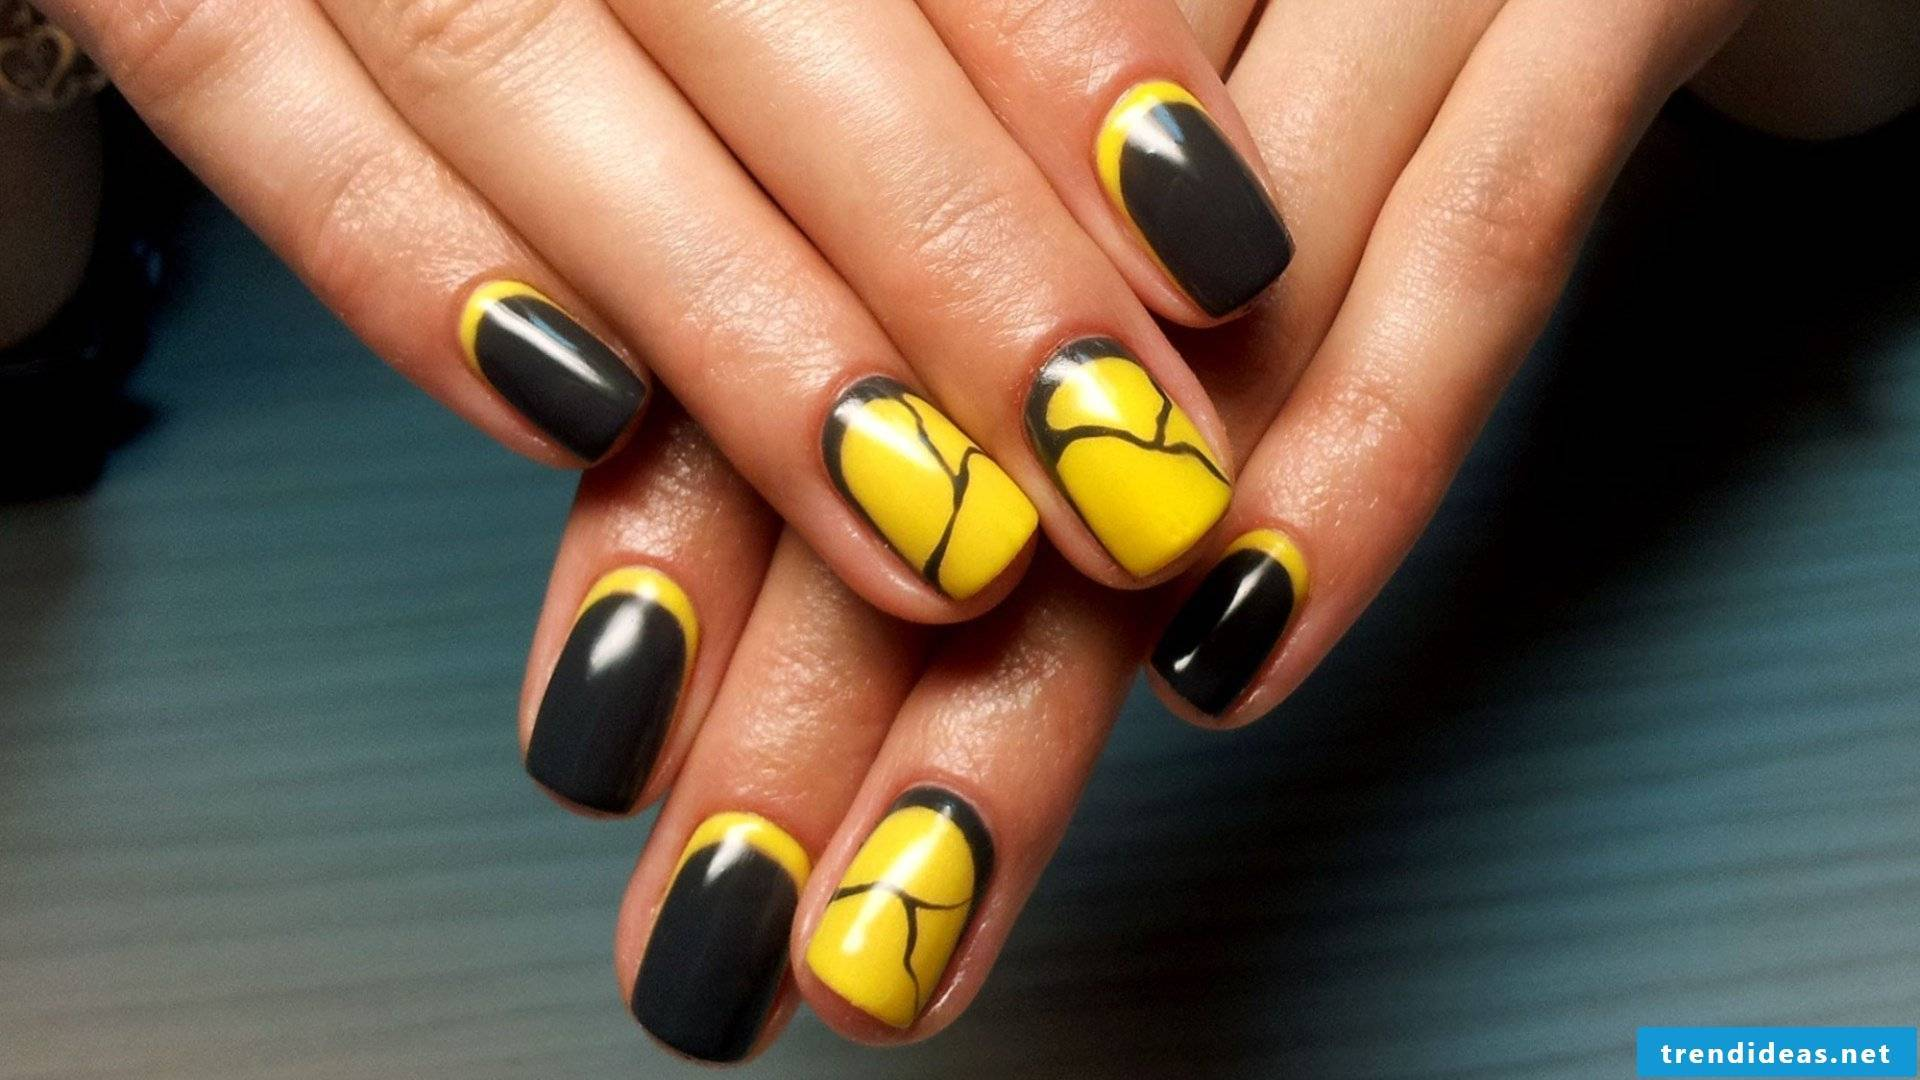 Marble nails in yellow